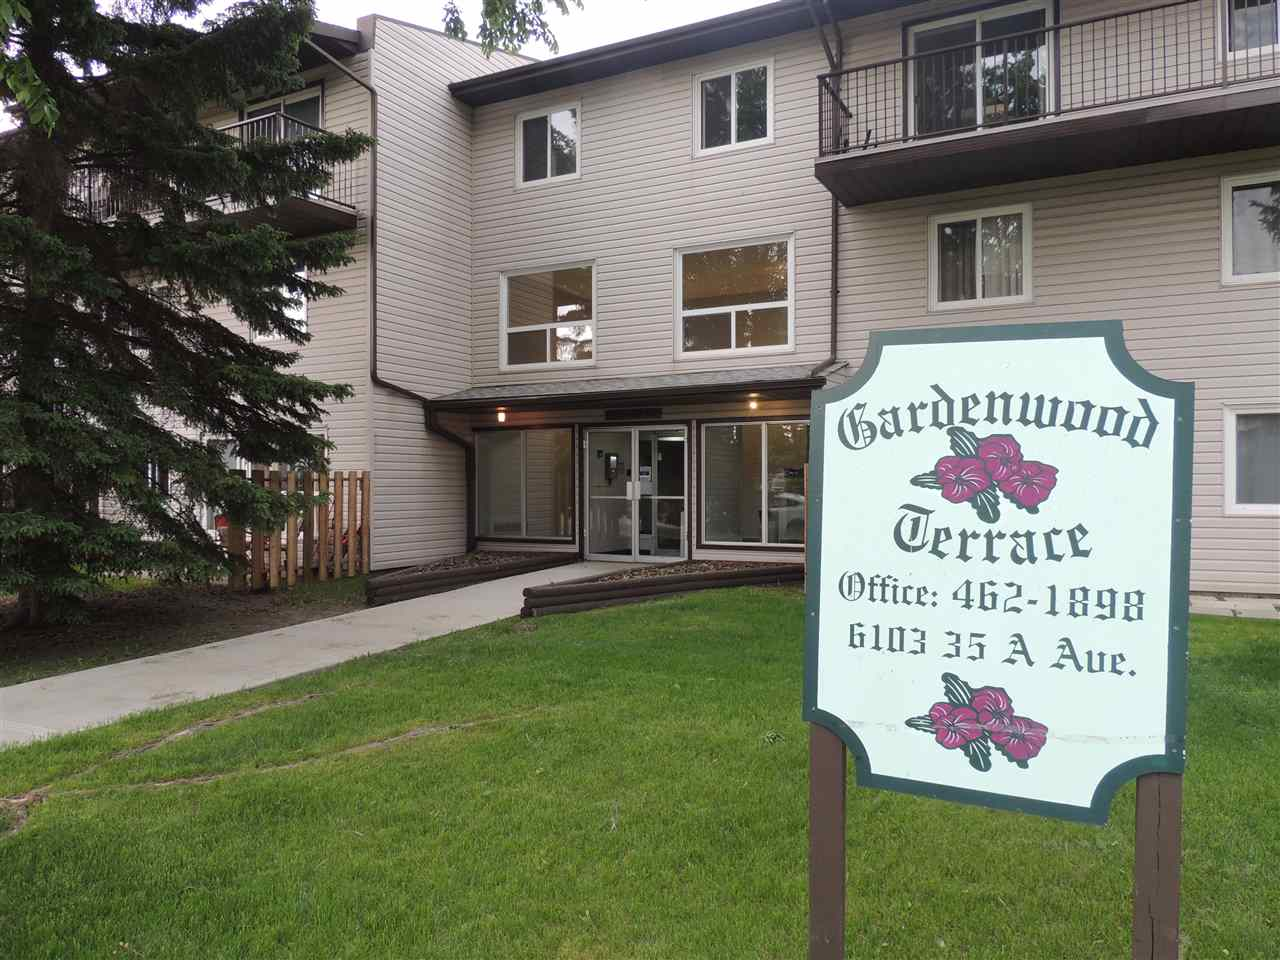 Main Photo: 210 6103 35A Avenue in Edmonton: Zone 29 Condo for sale : MLS® # E4073988